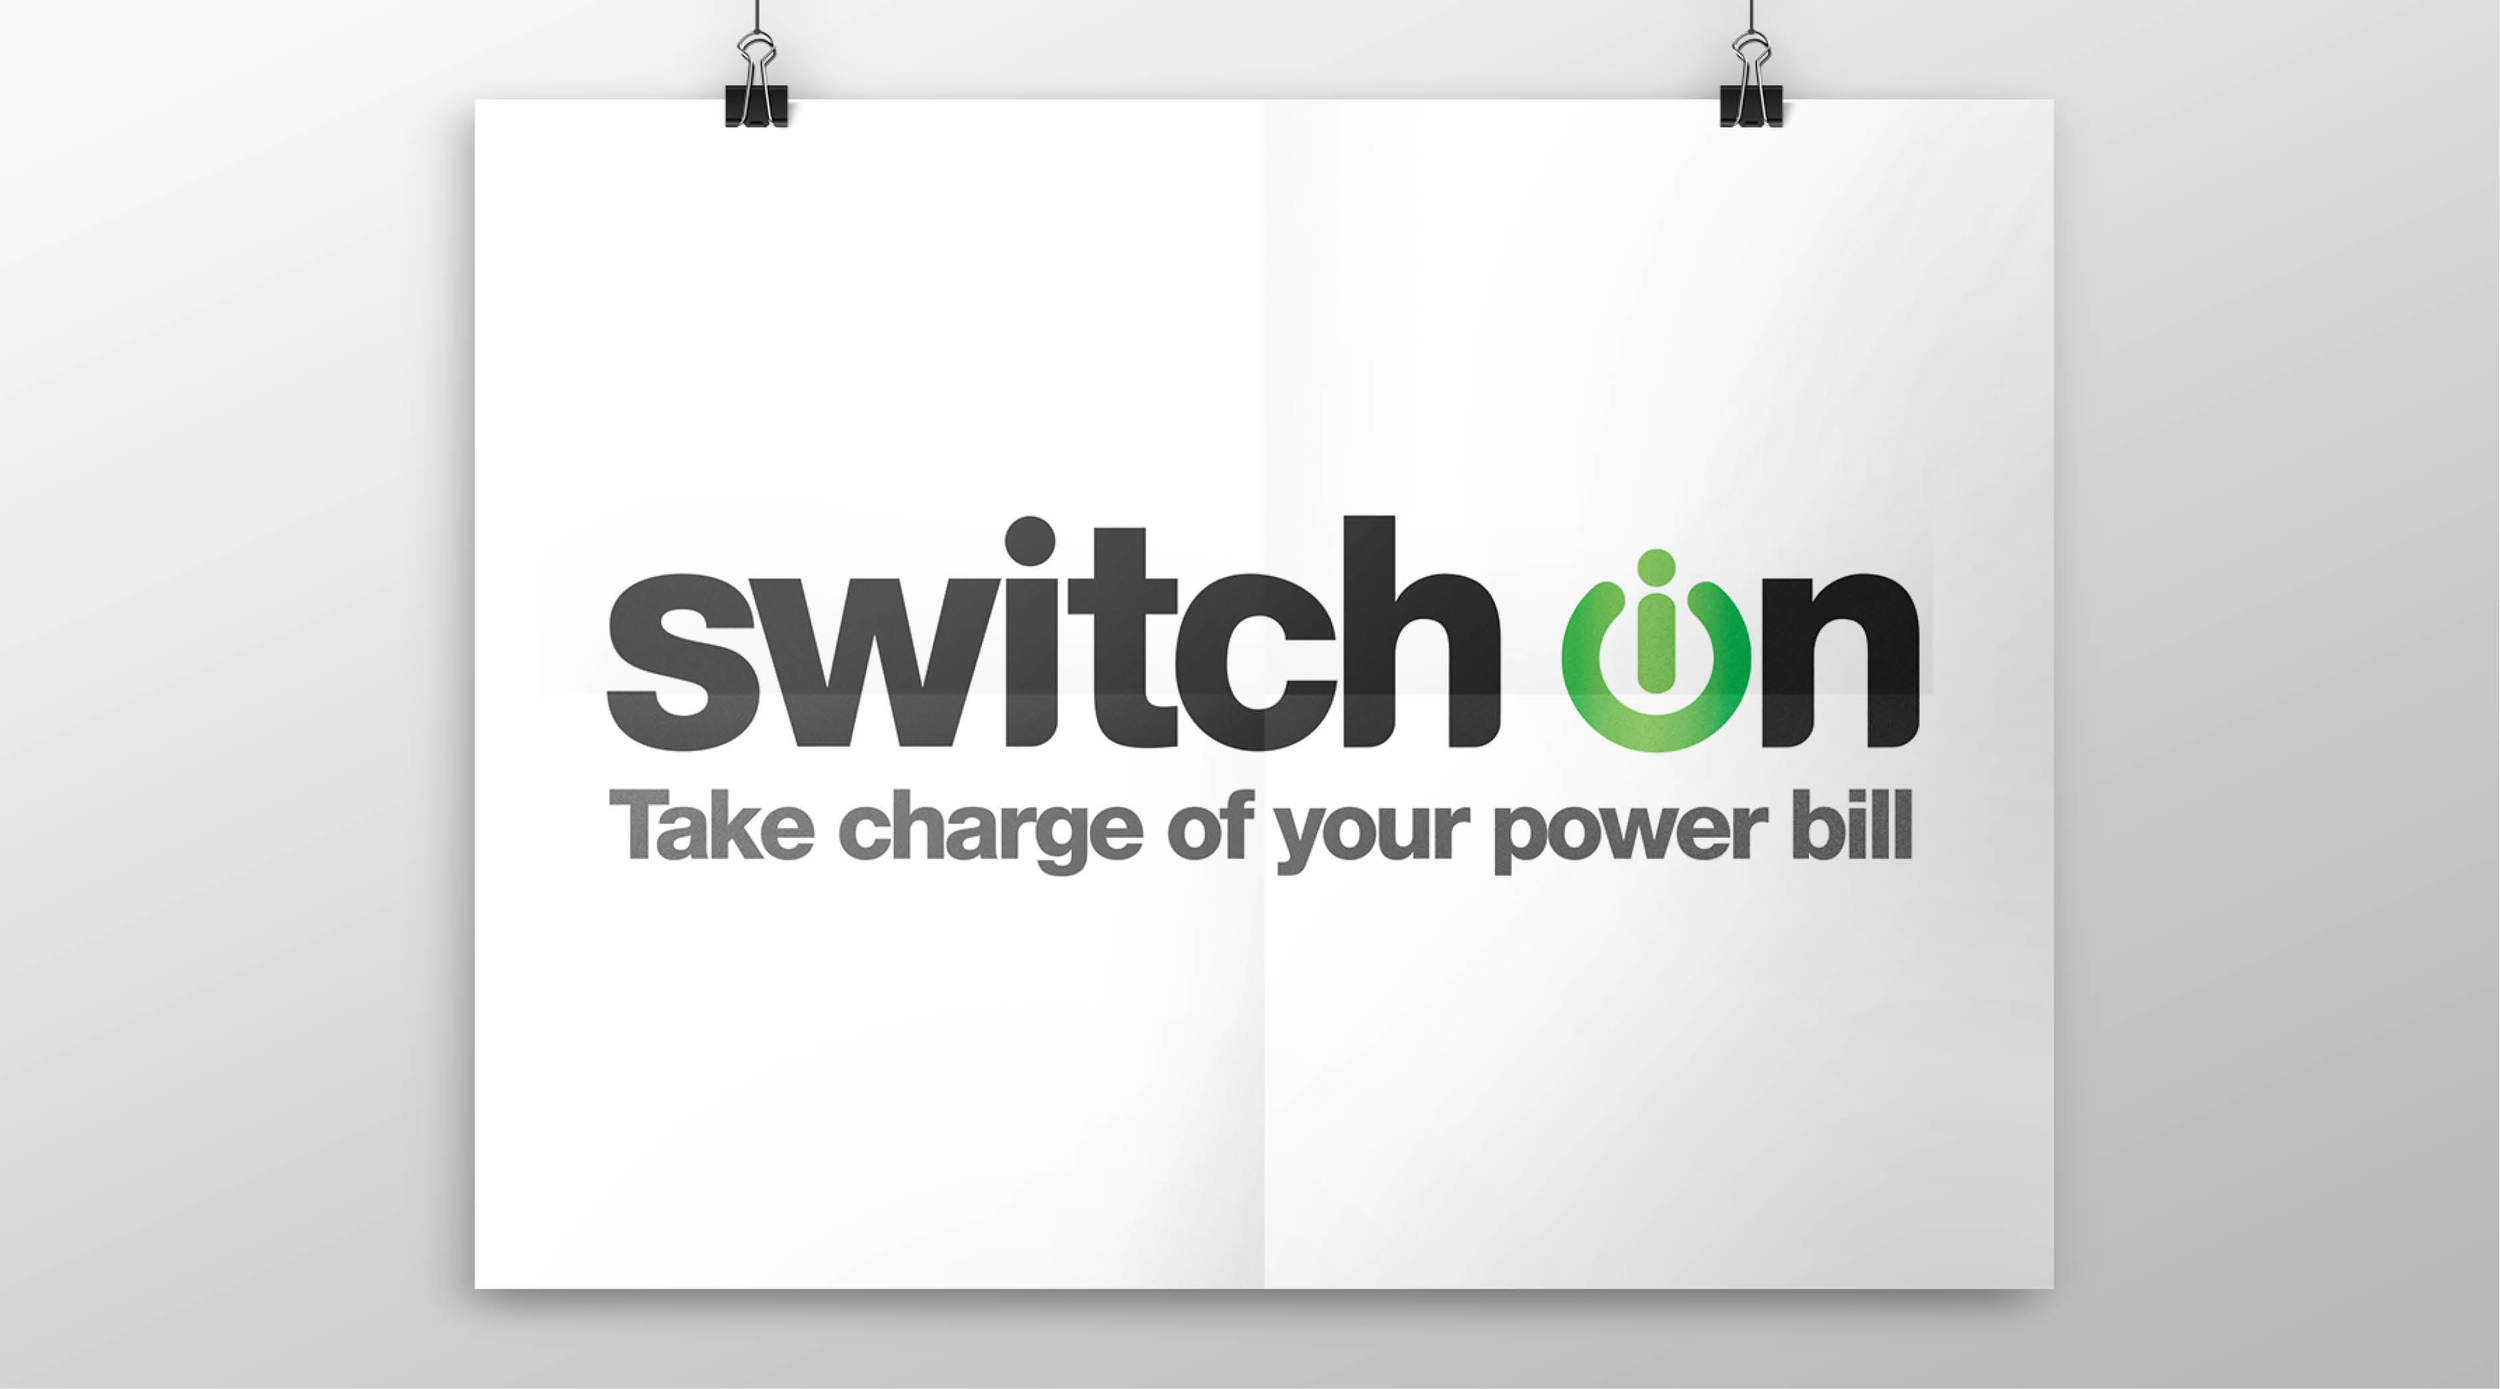 CC_036_FOLIO_IMAGES_SWITCH_ON_BRAND_DD01-5.jpg